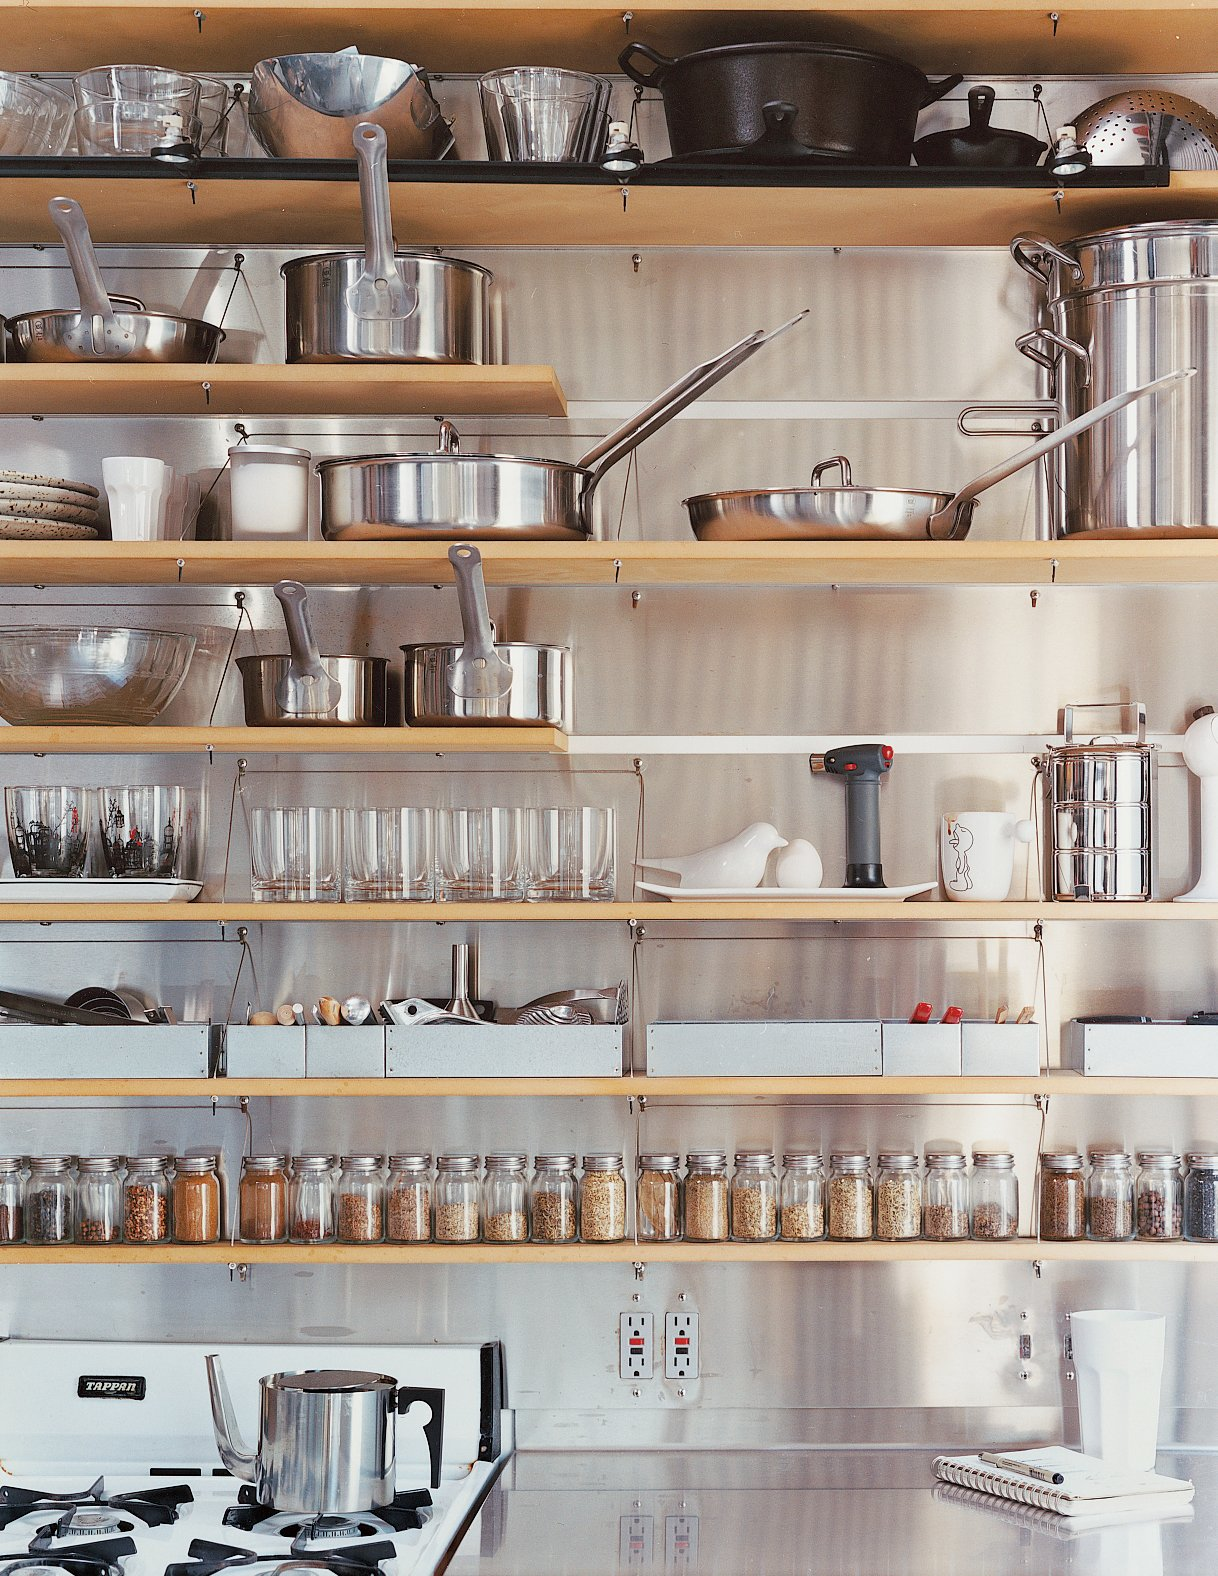 Kitchen The kitchen shelves are organized with clinical precision.  Photos from Modern Mixed Use in San Diego